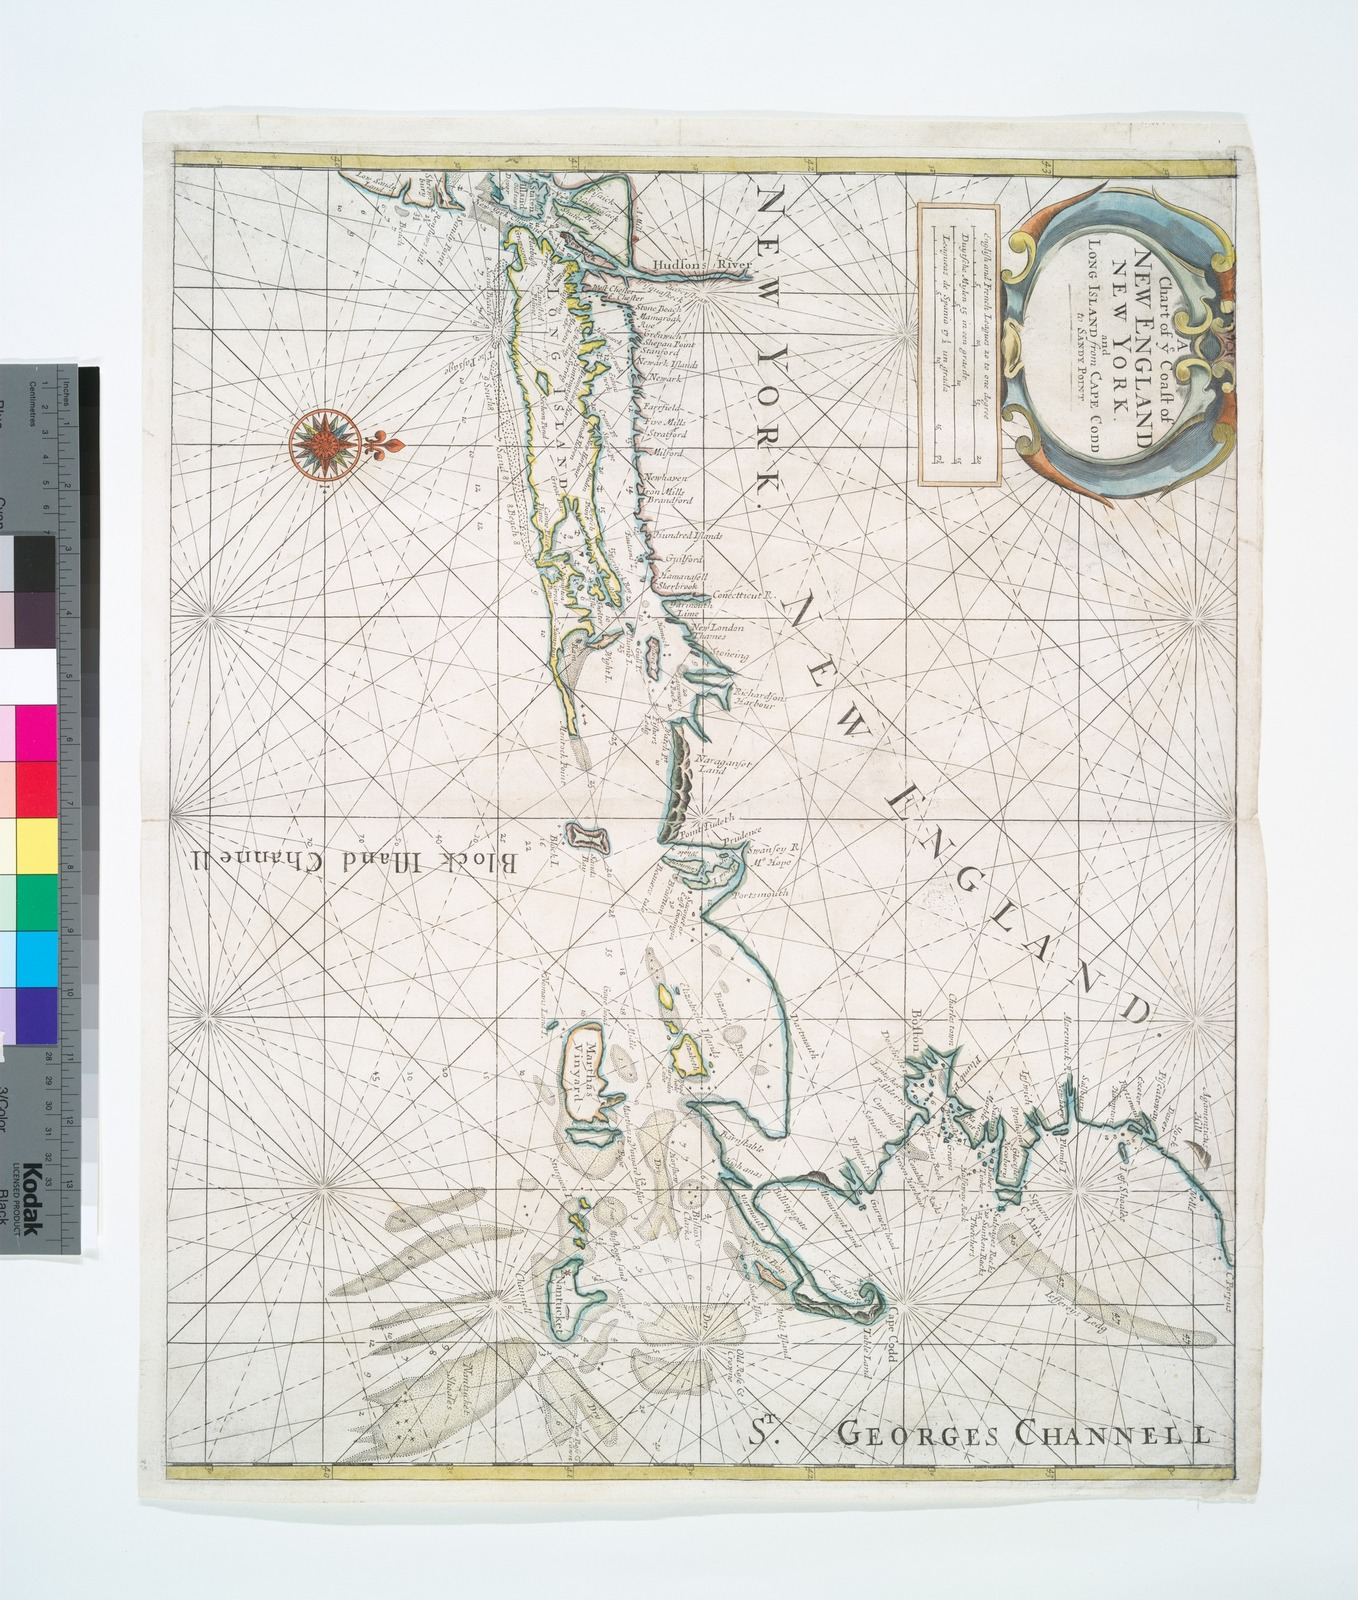 A Chart of ye coast of New England, New York and Long Island from Cape Codd to Sandy Point.